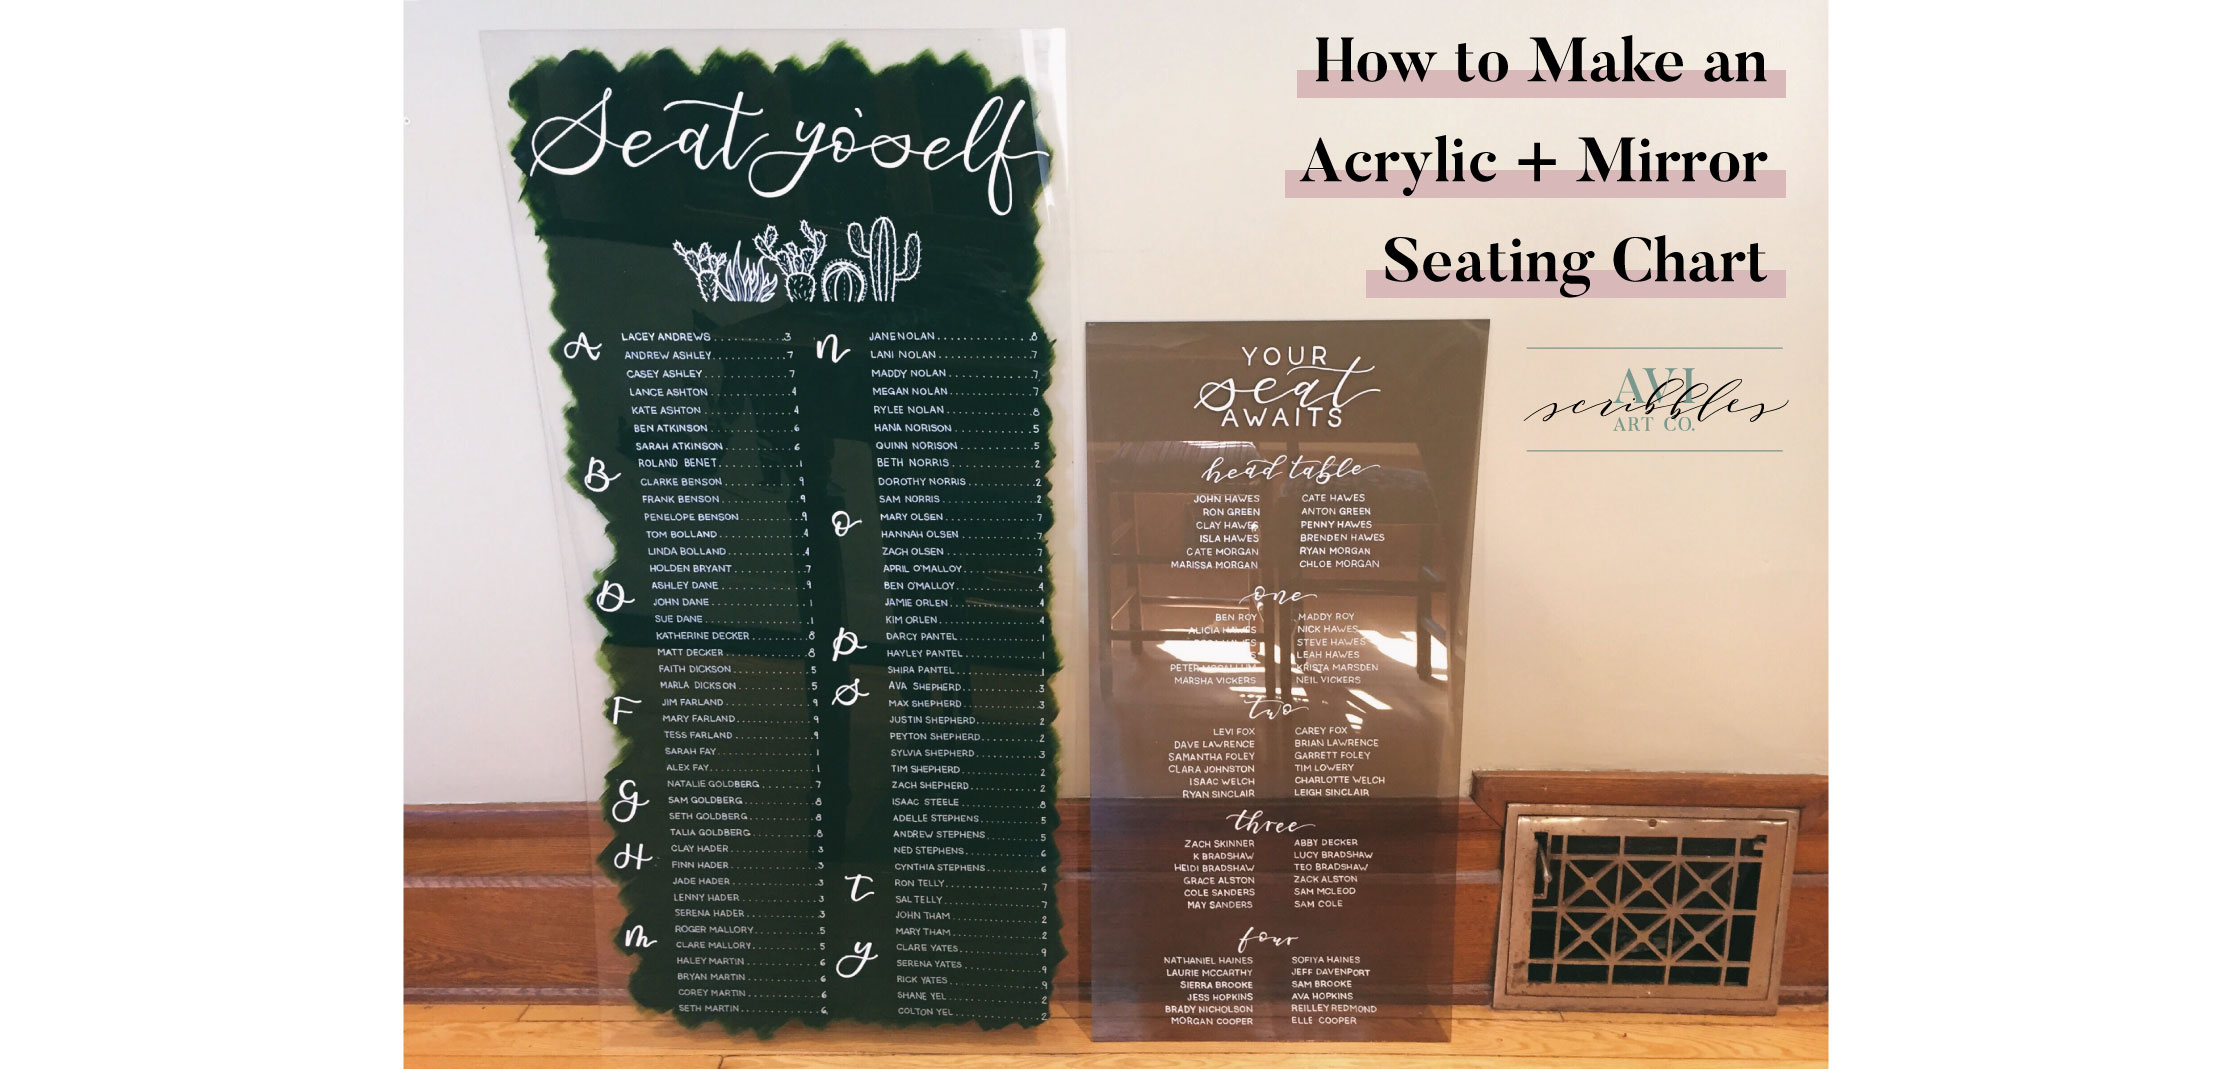 How-To-Make-An-Acrylic-And-Mirror-Seating-Chart-Banner.jpg